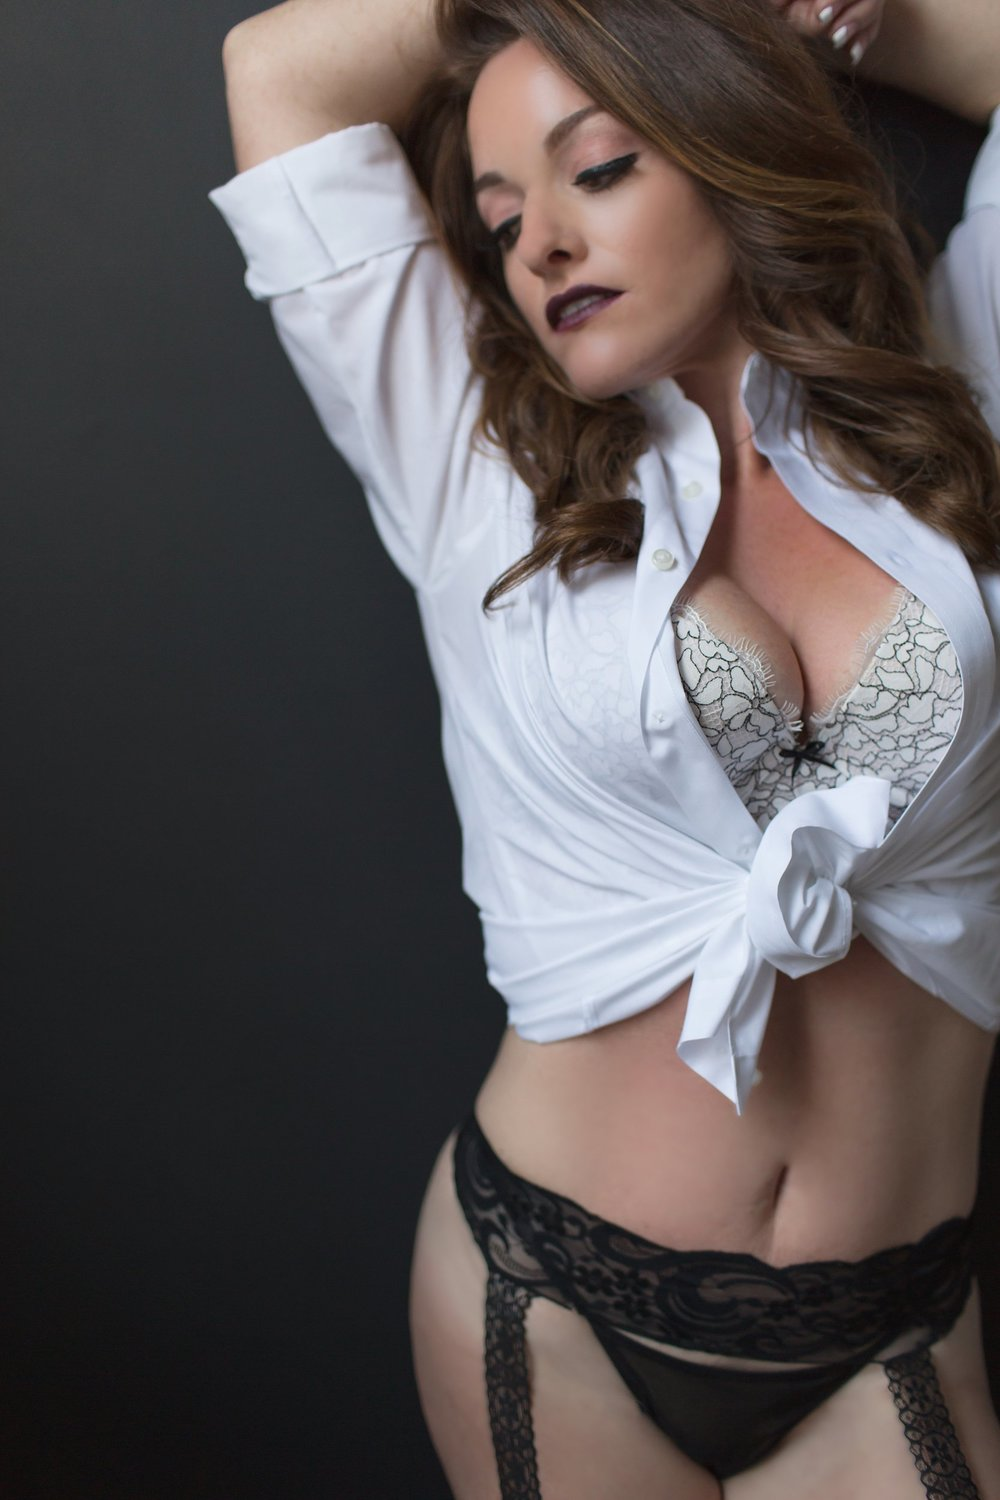 Sexy woman in men's dress shirt with garter